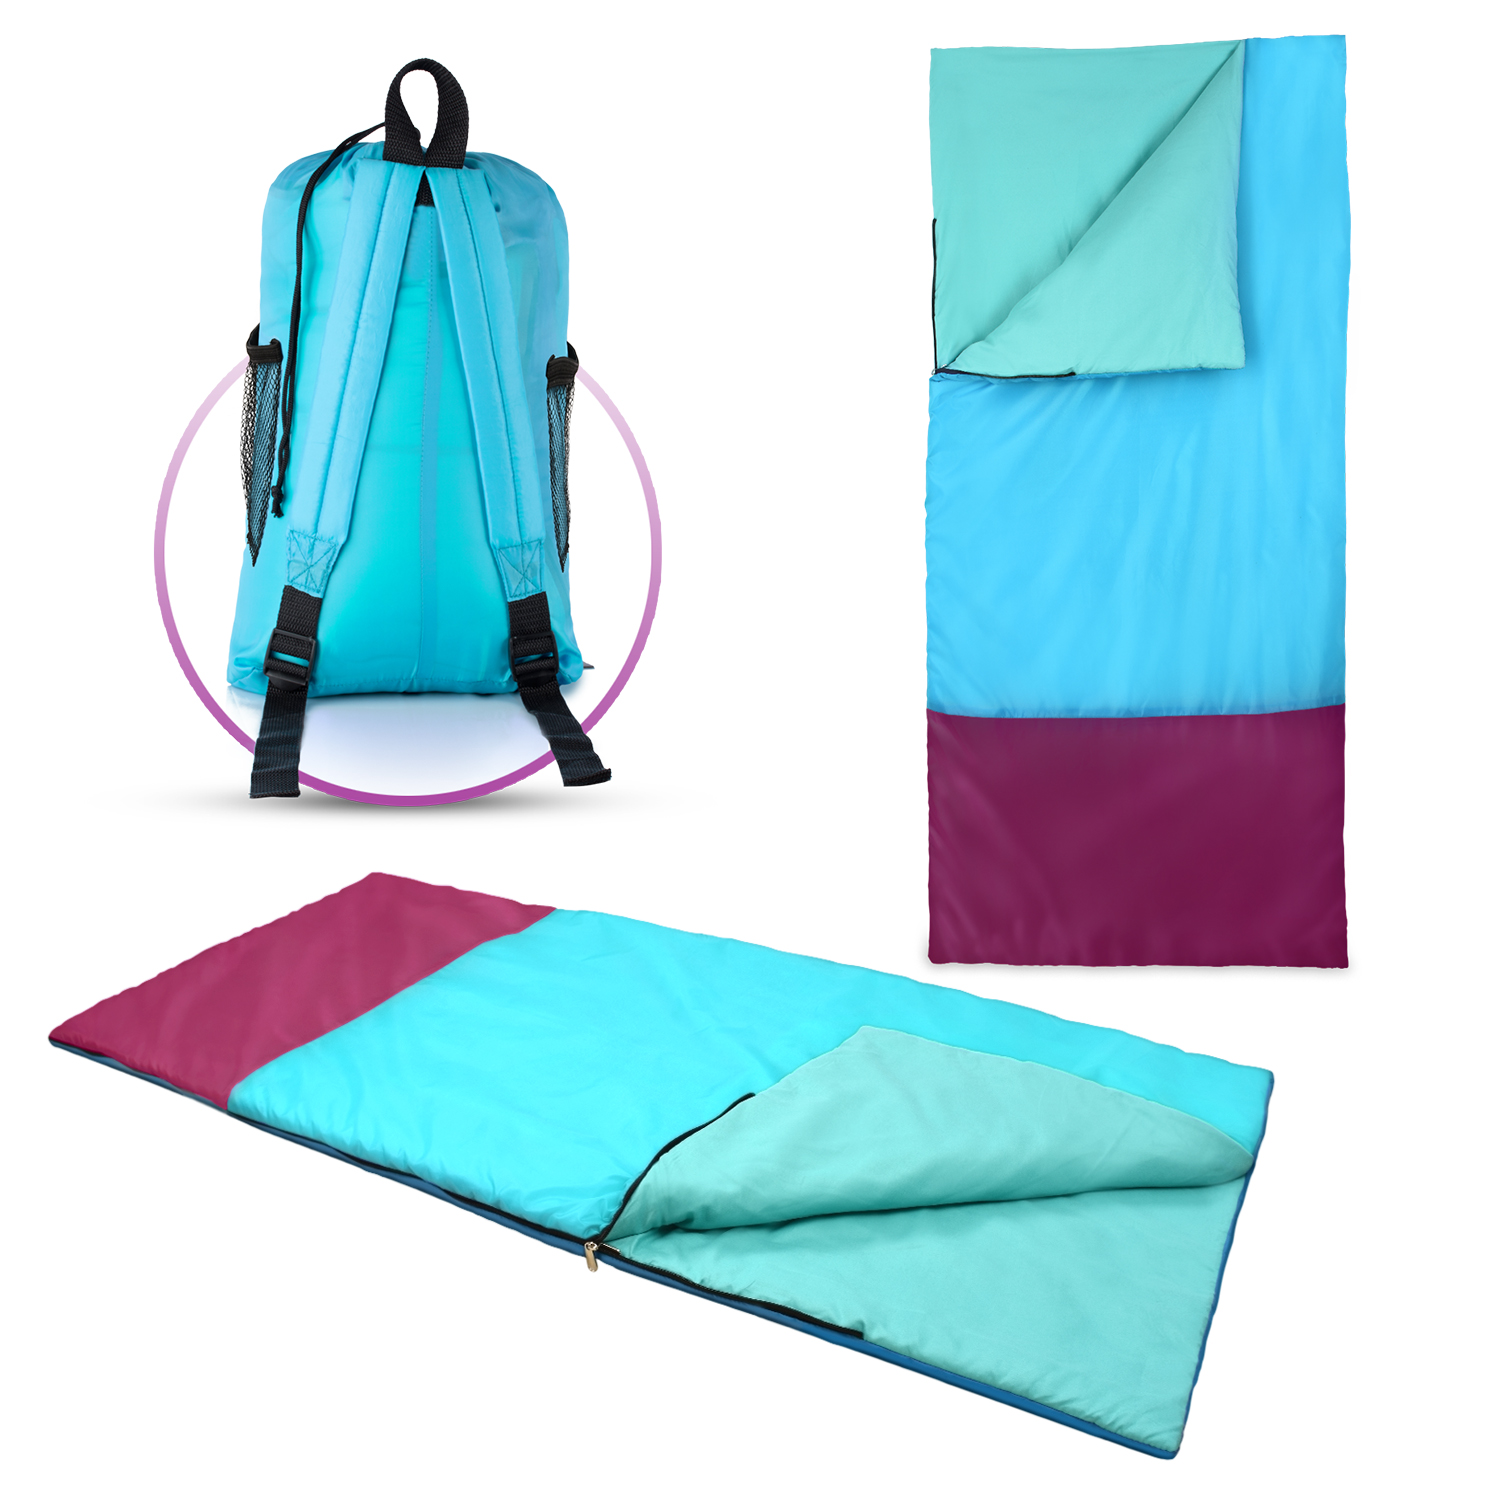 Kids or Children's Junior Sleeping Bags for Boys and Girls